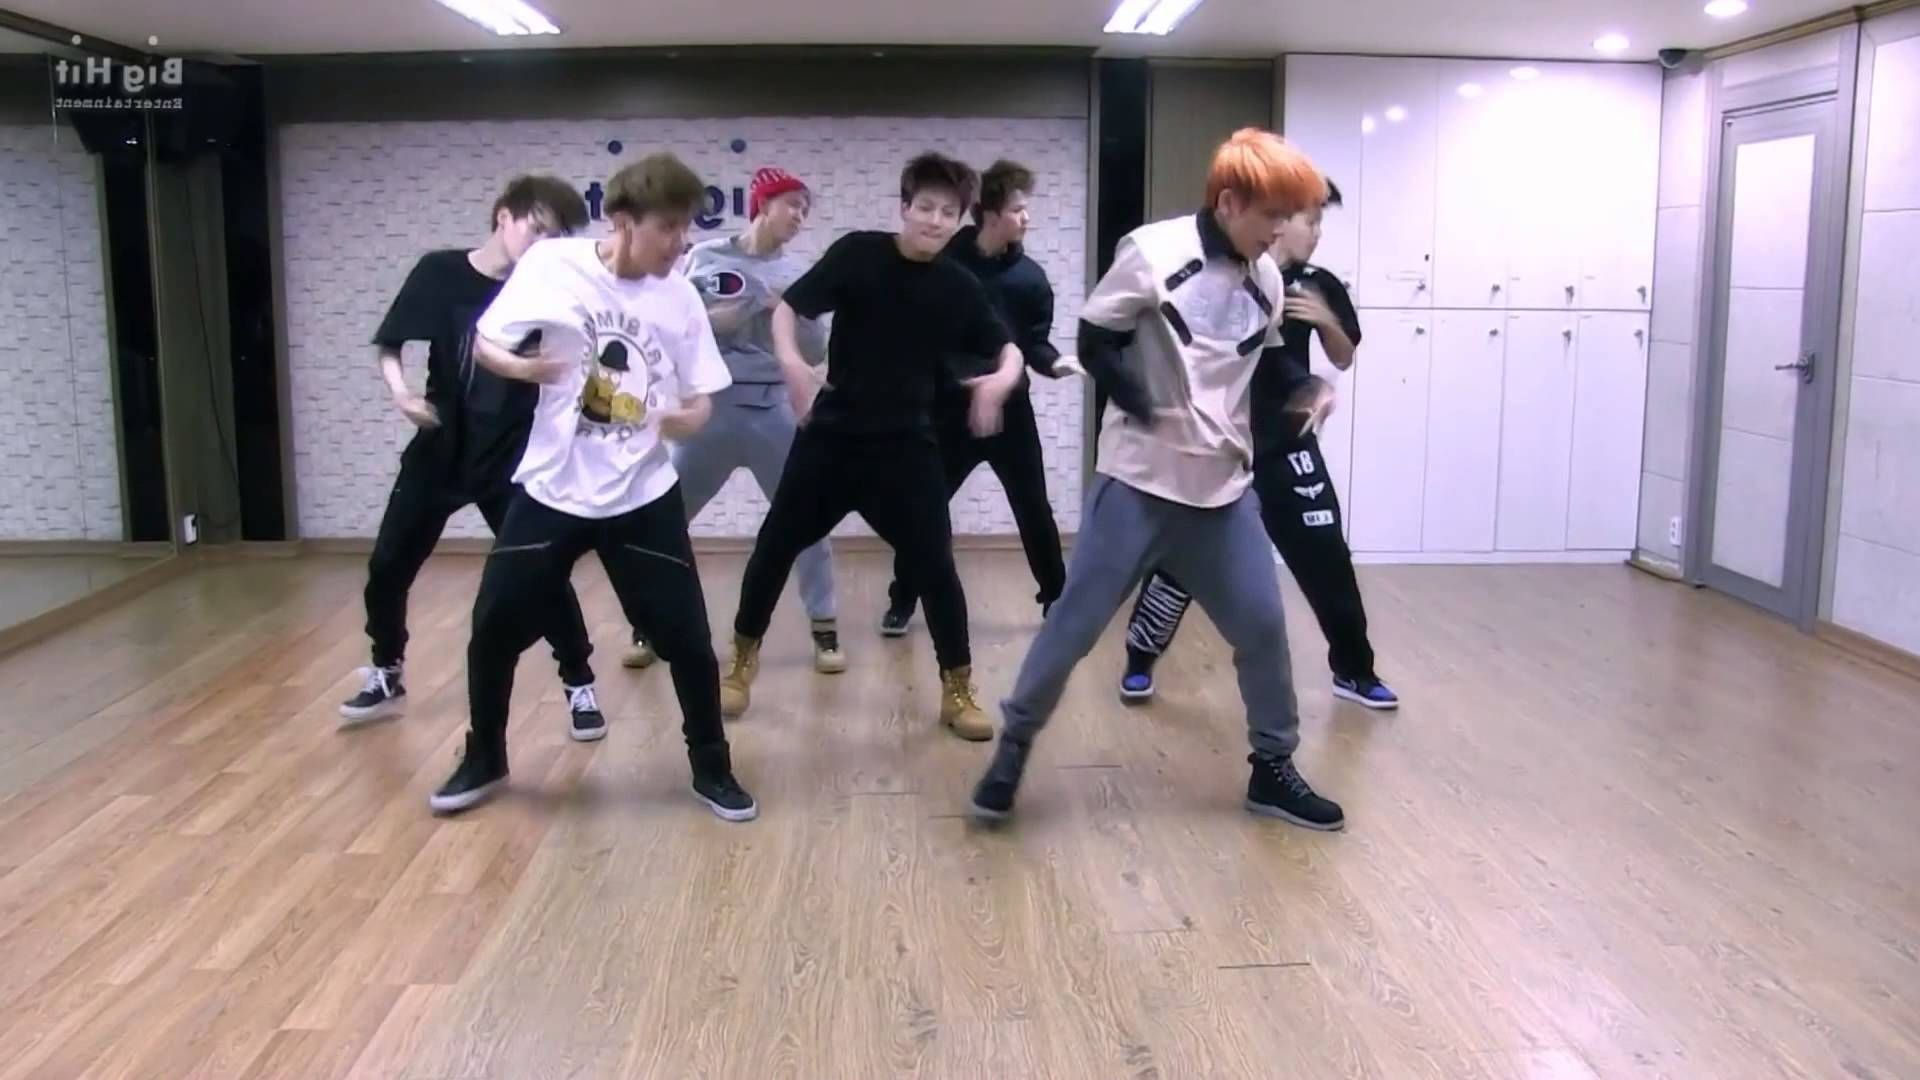 BTS - Boy in Luv - mirrored dance practice video - 방탄소년단 상남자